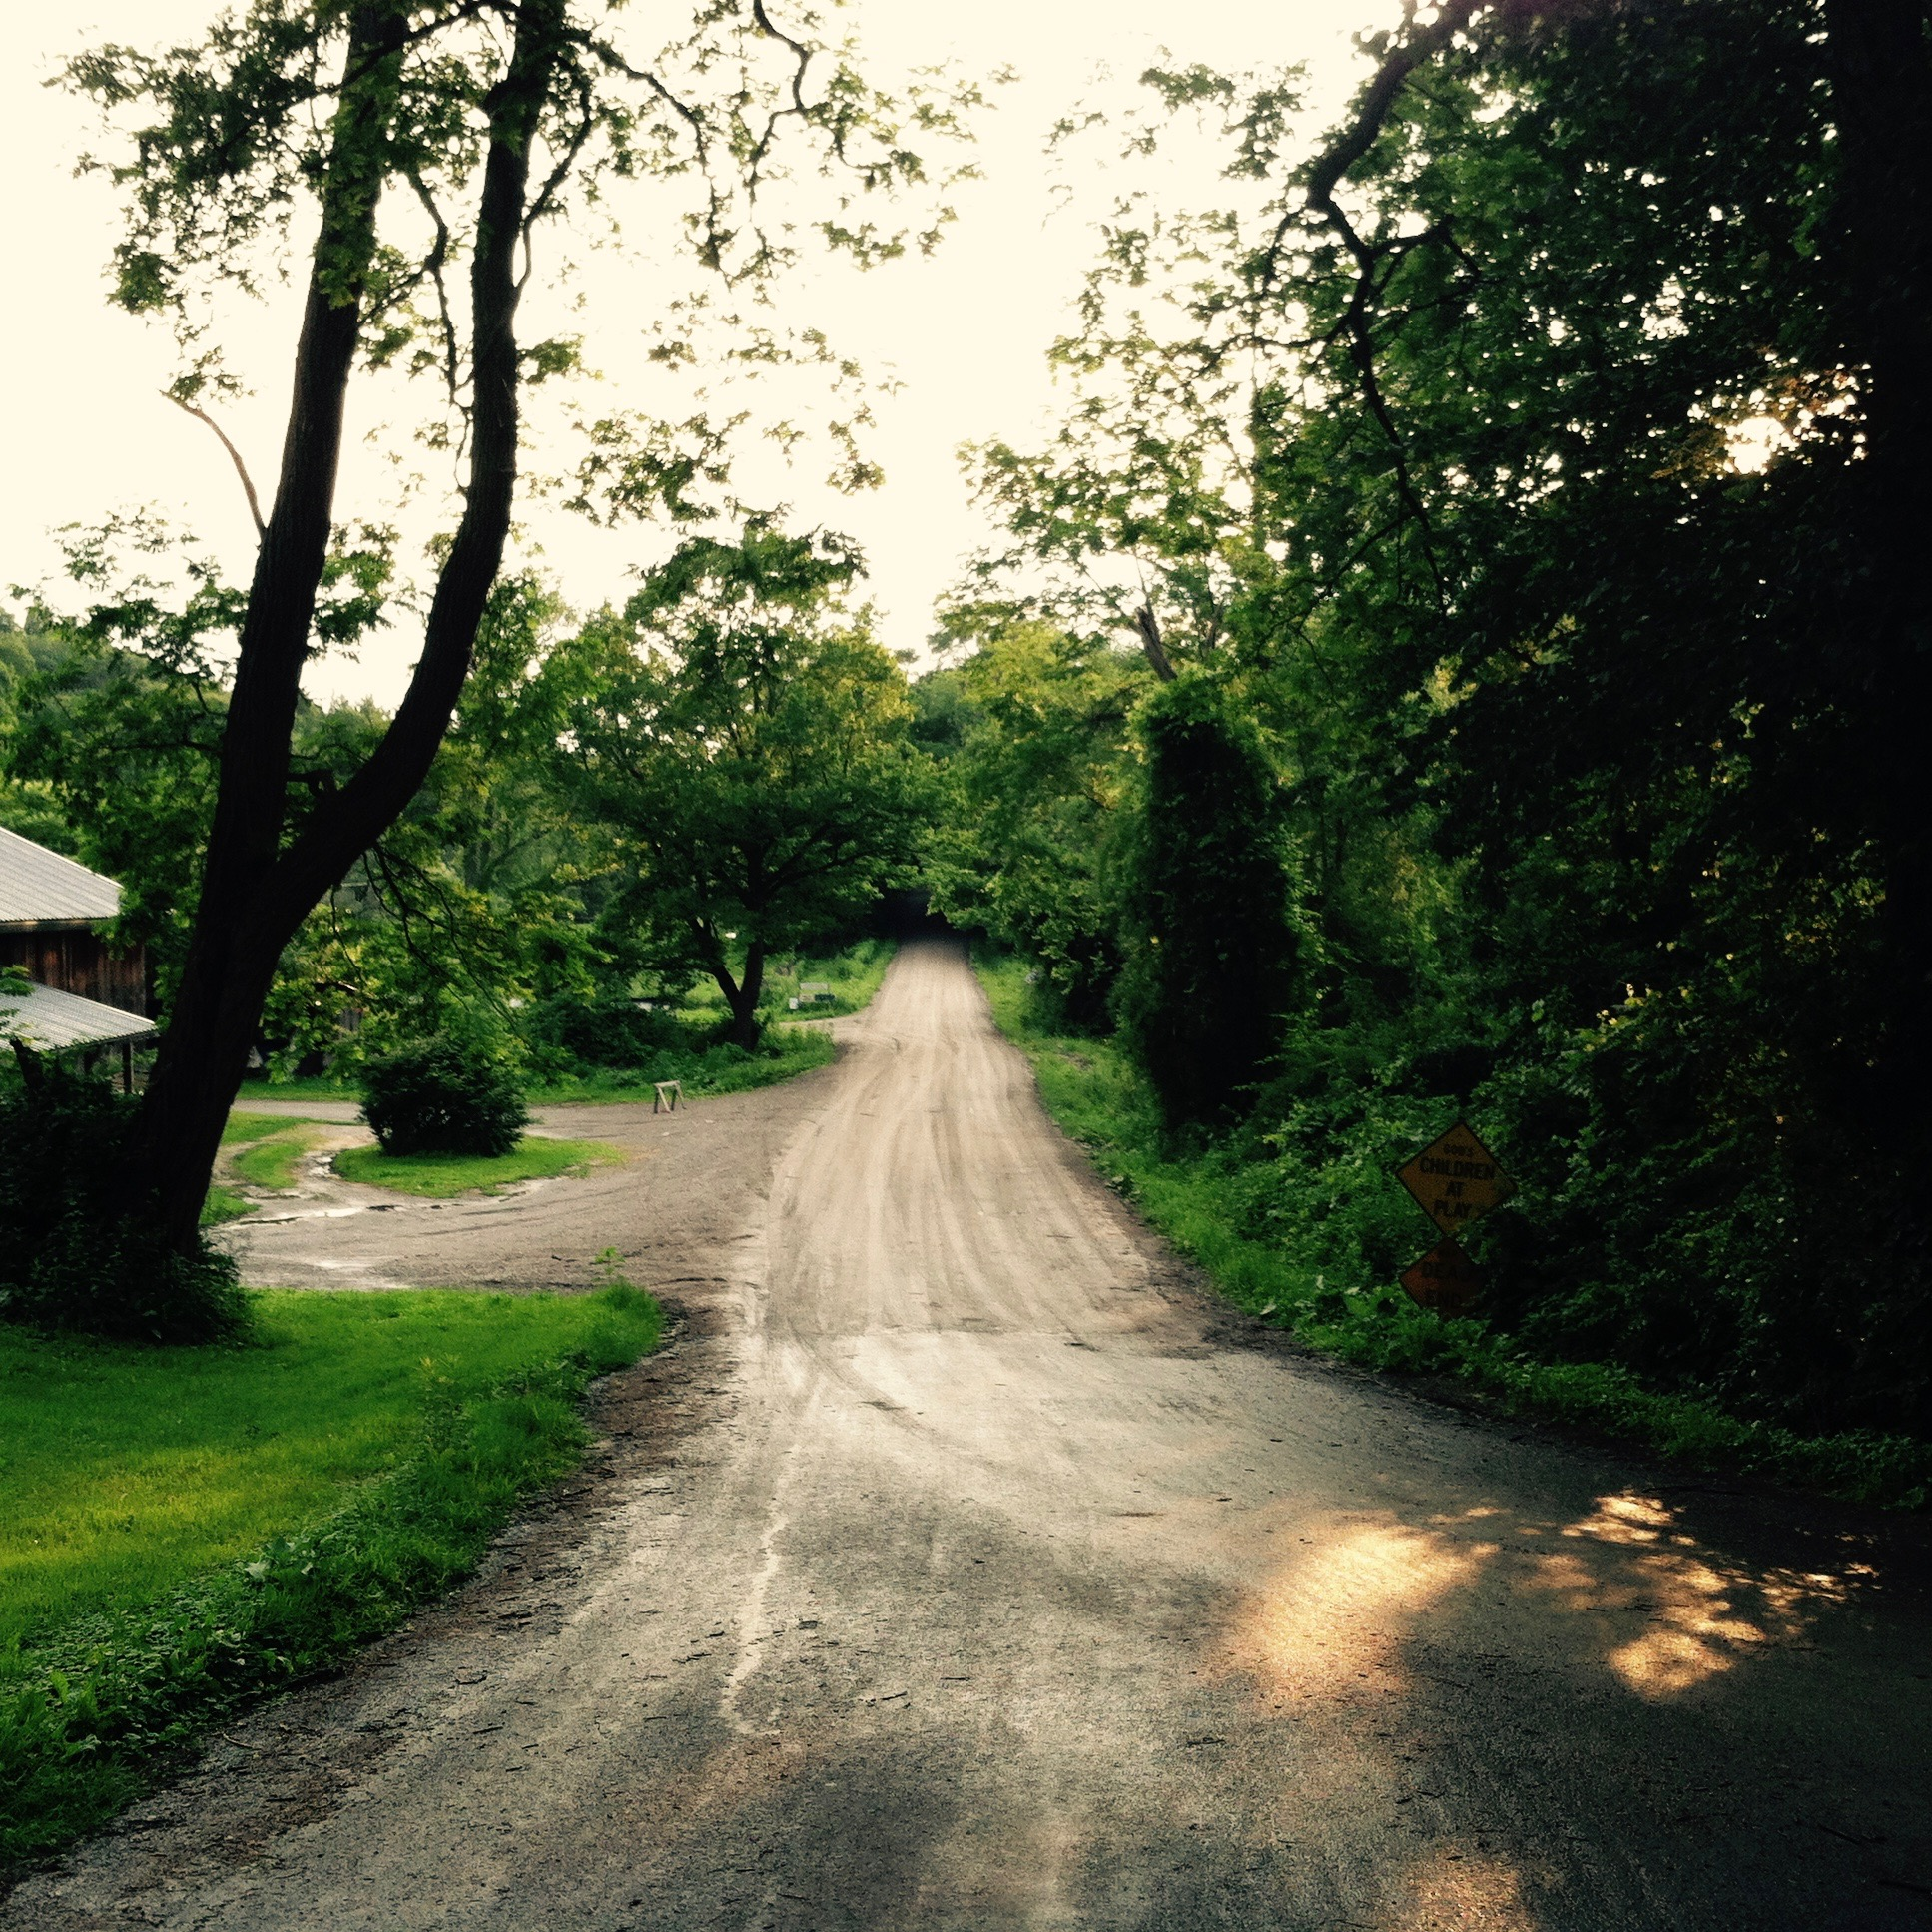 Heading down Chairfactory Road to a party. — N.M-Y, 2015